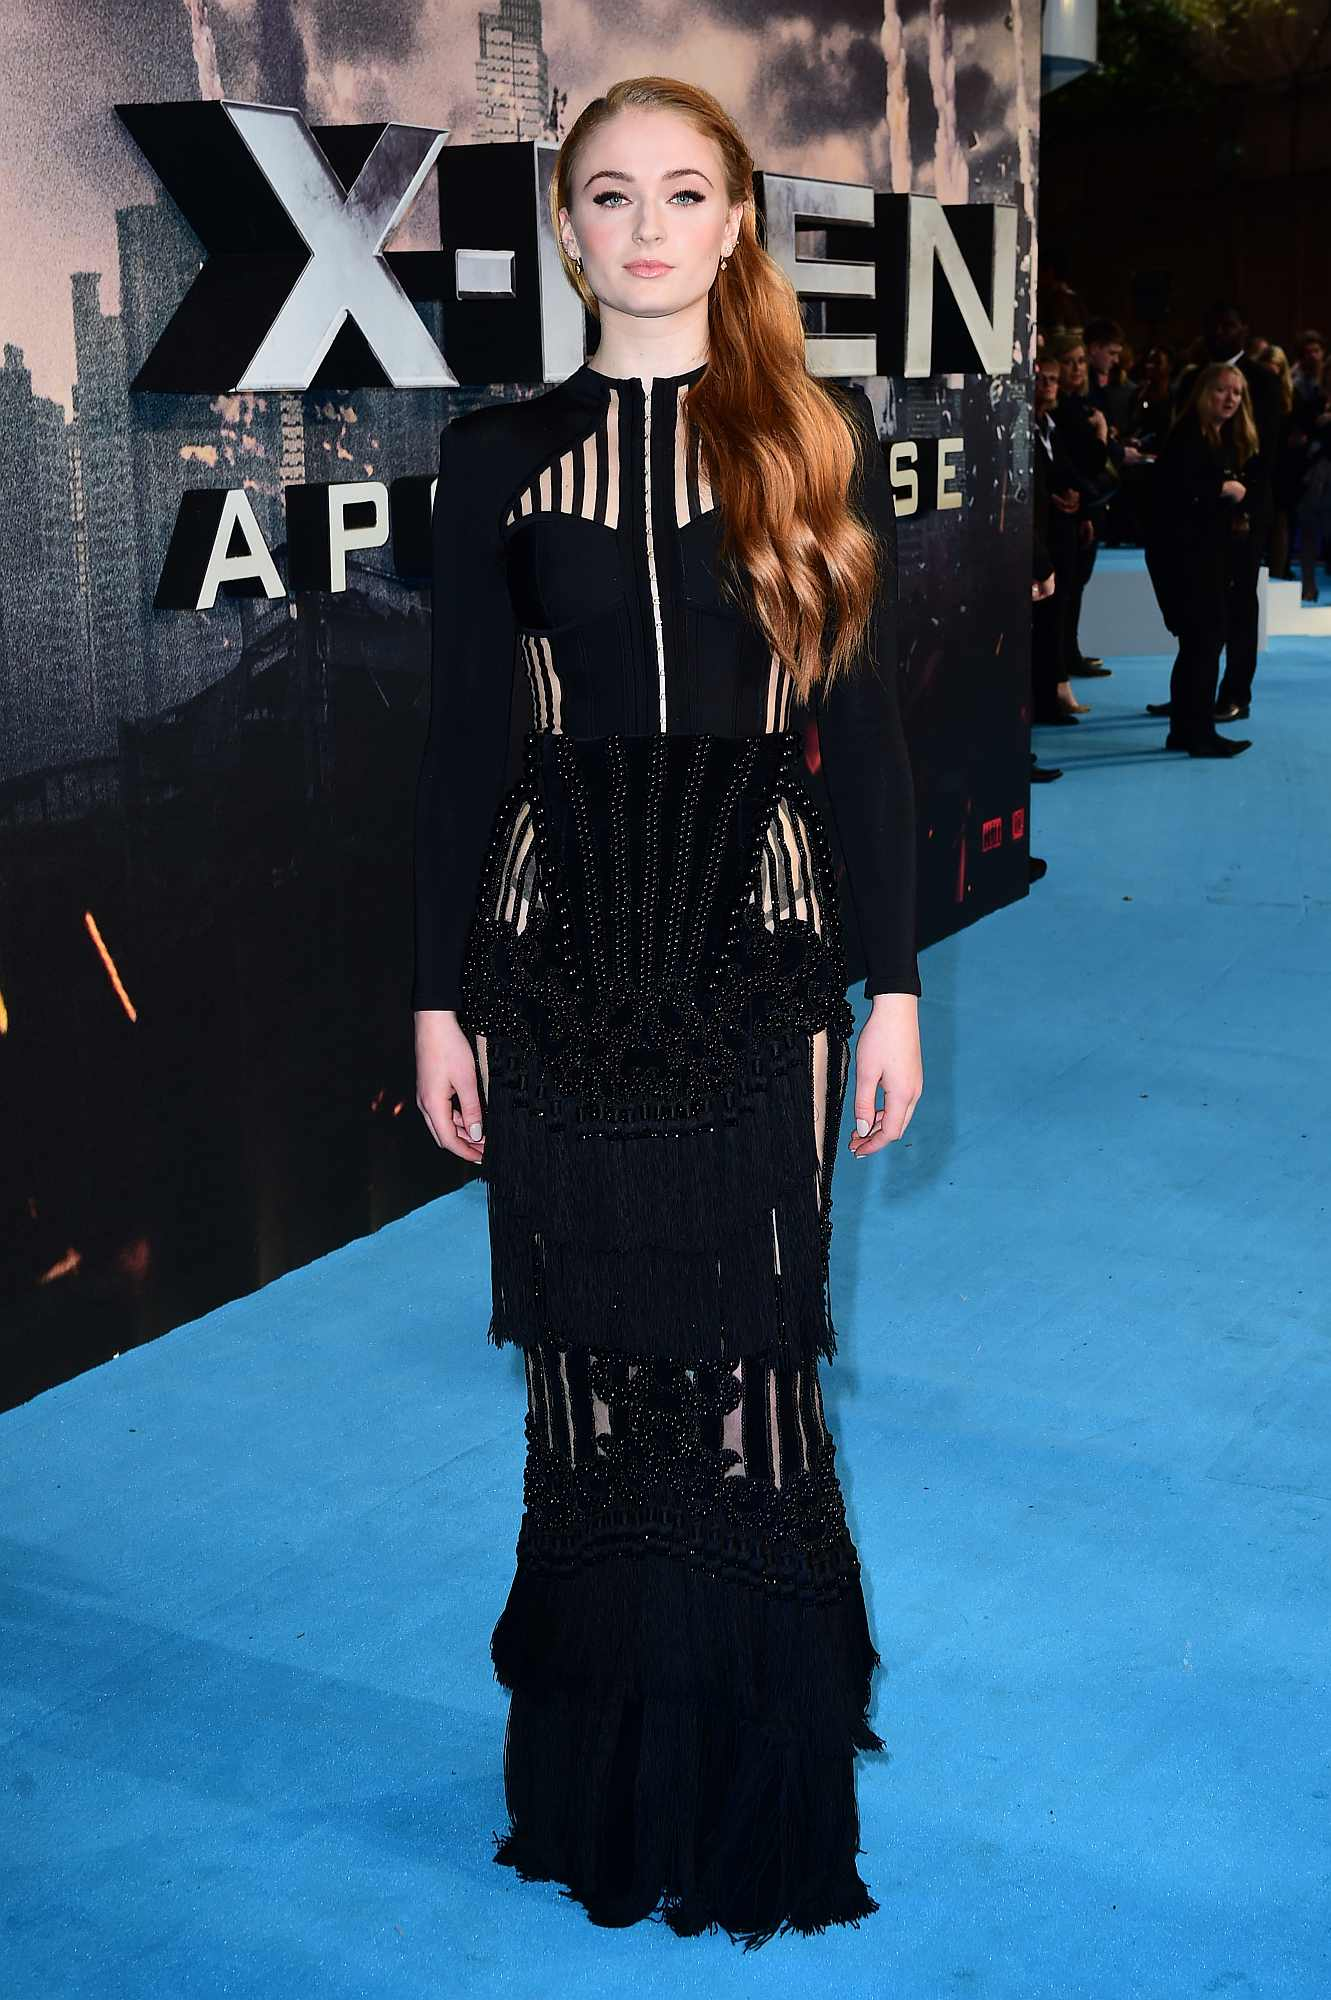 Sophie Turner attending the X Men: Apocalypse Global Fan Screening at the London's BFI IMAX